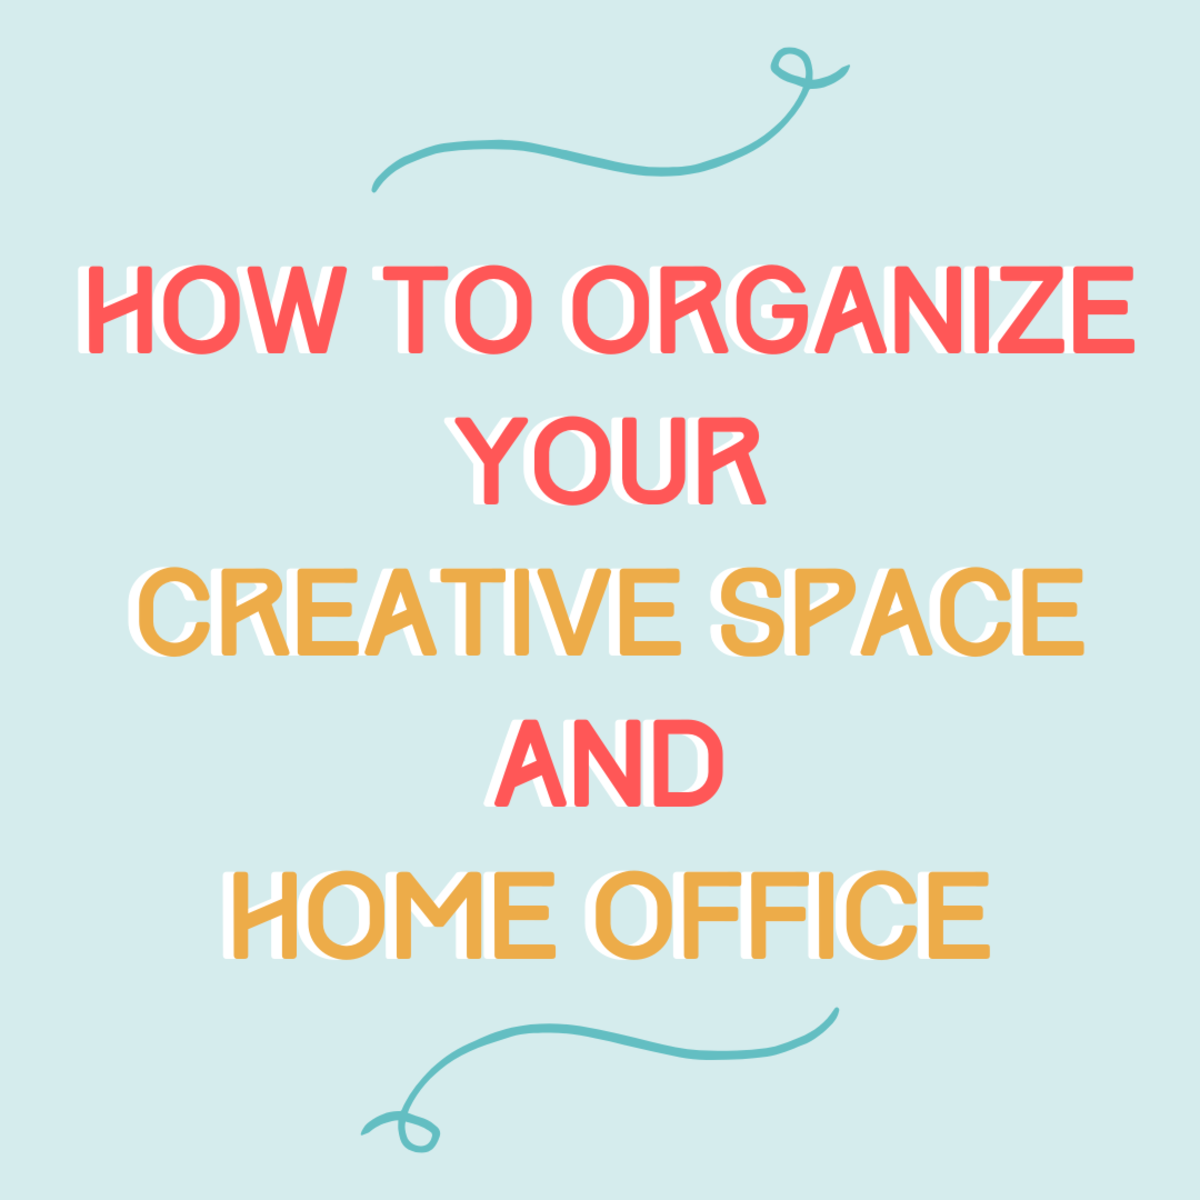 Get some tips on getting organized to keep your projects and your home office tidy and productive.